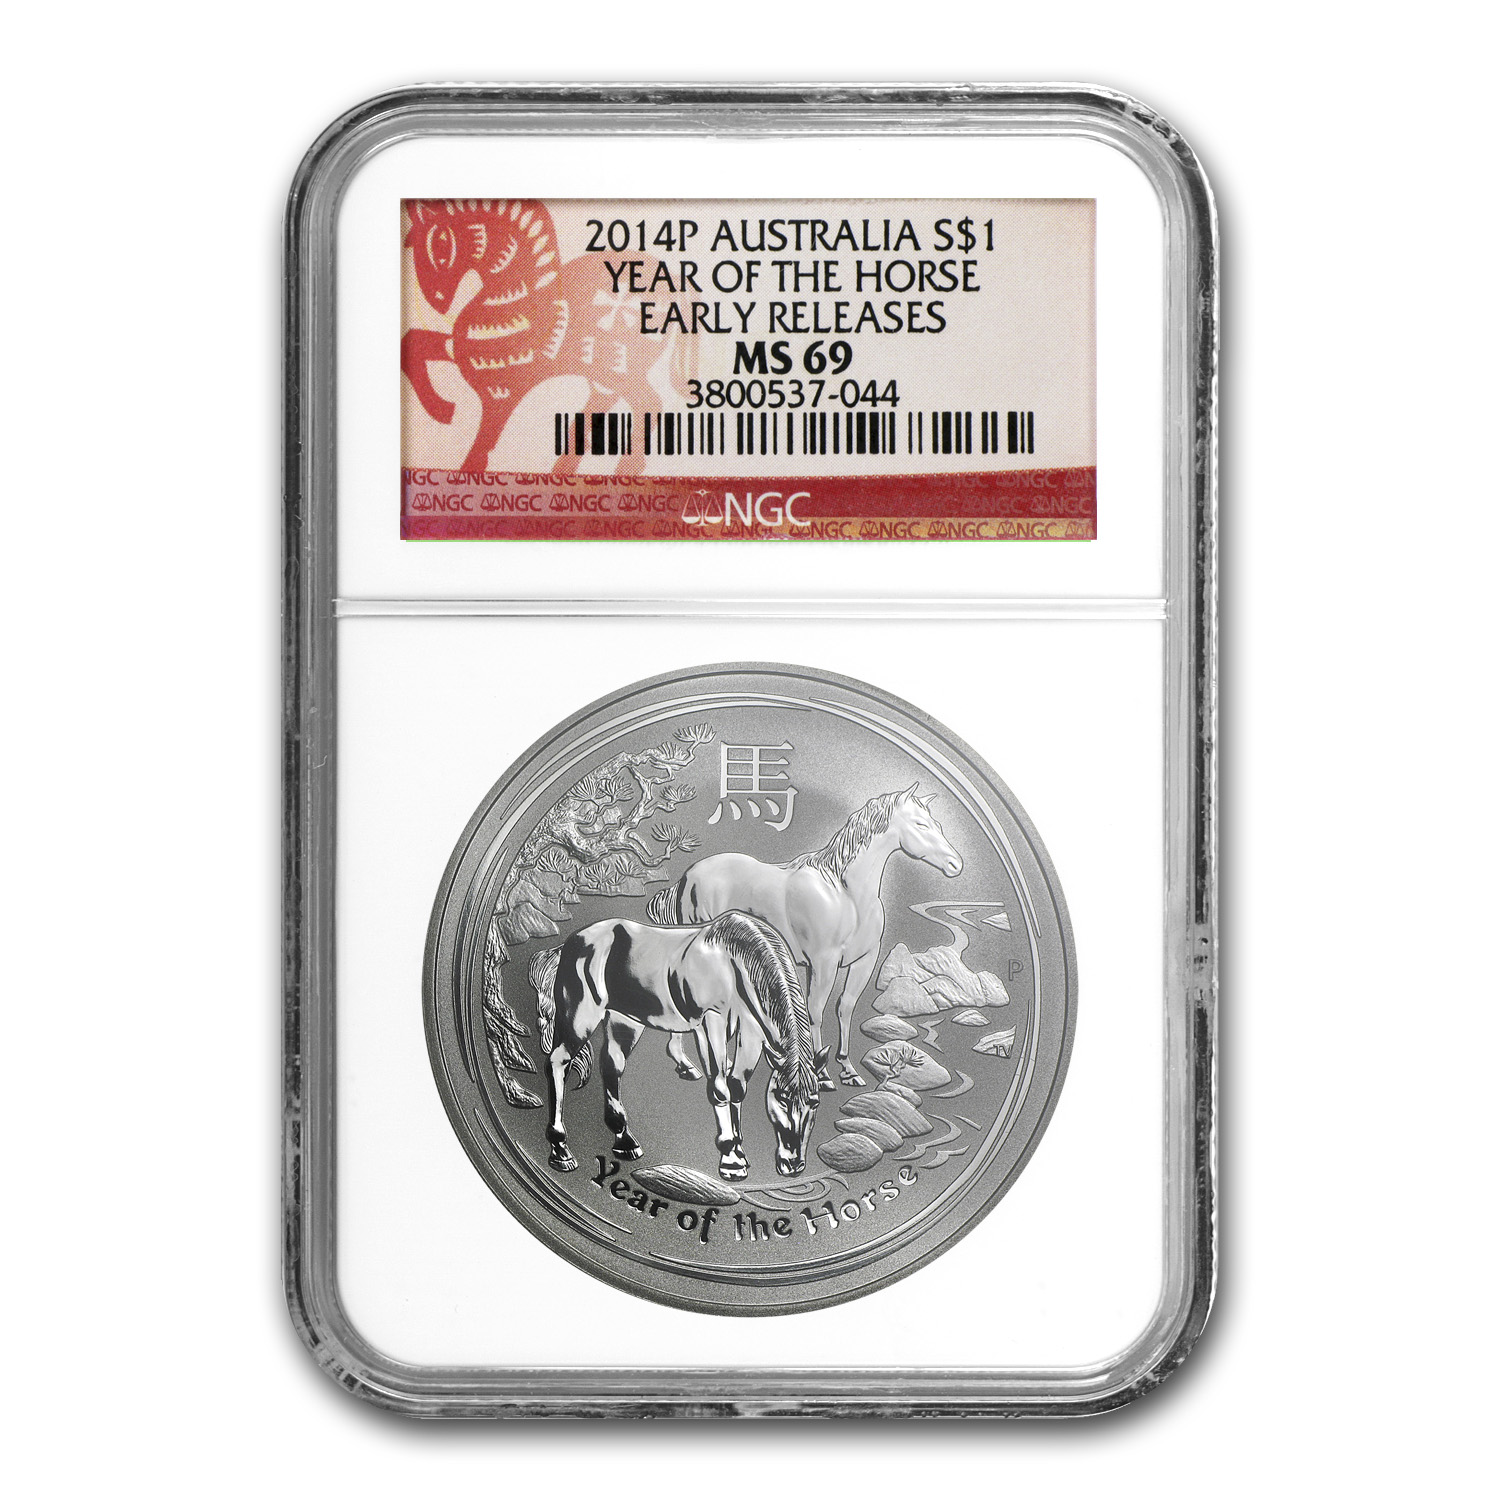 2014 Australia 1 oz Silver Year of the Horse MS-69 NGC (ER)